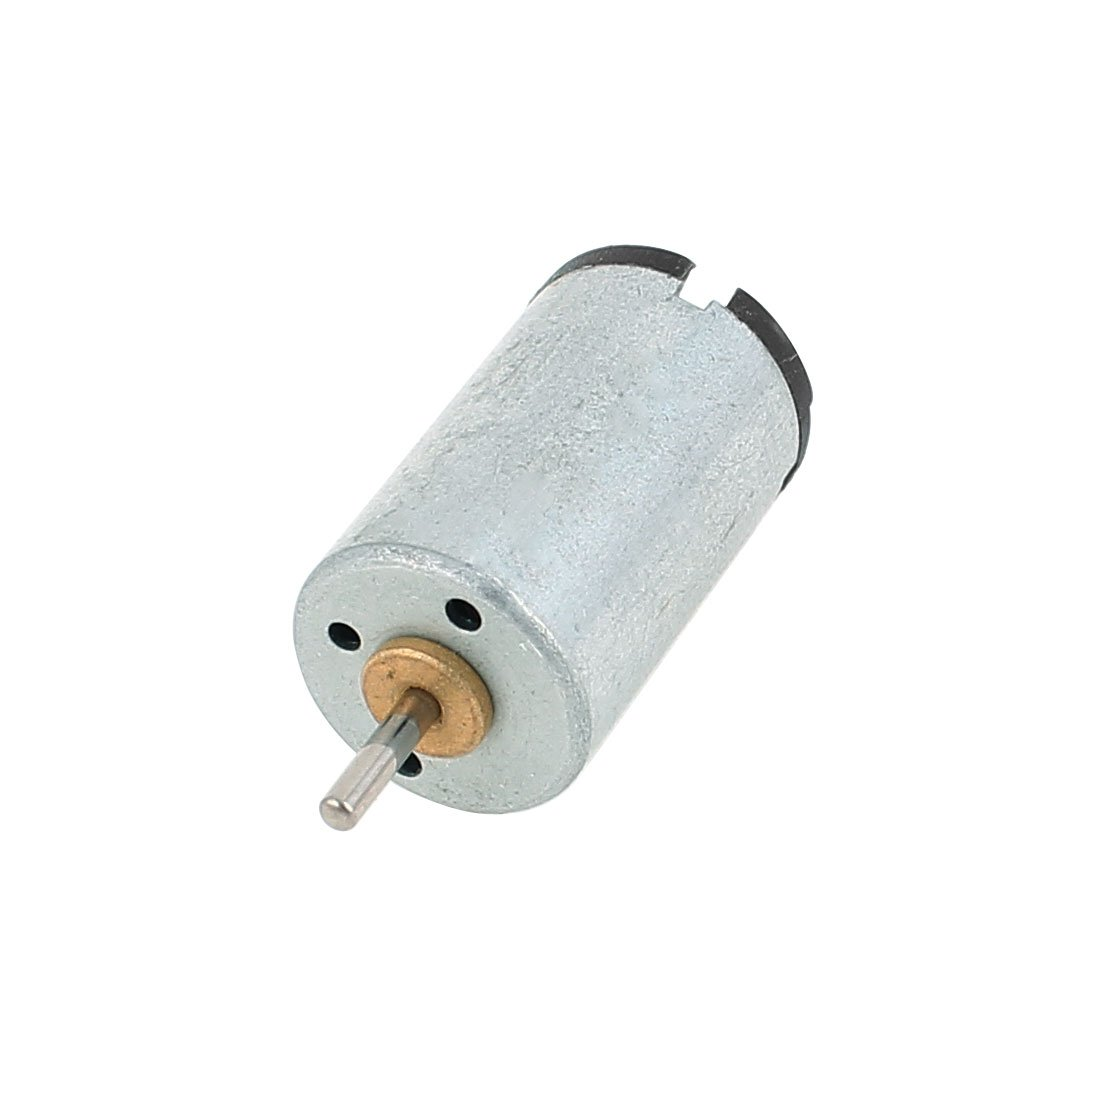 uxcell DC 6V-12V 25000RPM Speed 1.5mm Shaft Cylindrical Electric Micro Motor US-SA-AJD-188607